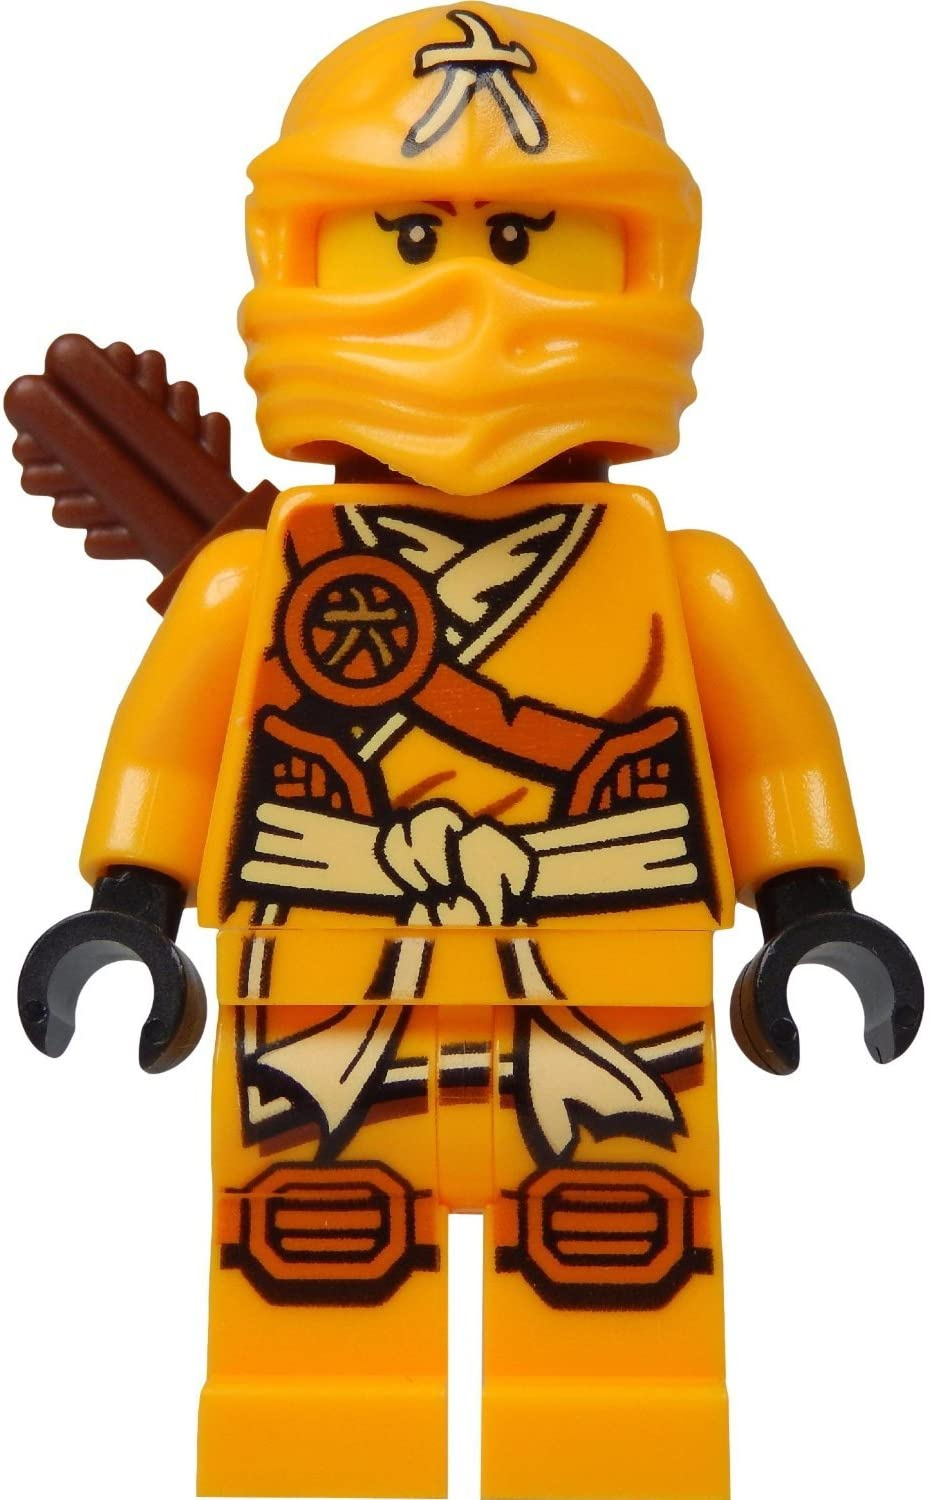 LEGO Ninjago Minifigure - Skylor Female Orange - Gold Ninja with Crossbow and Quiver (70746)